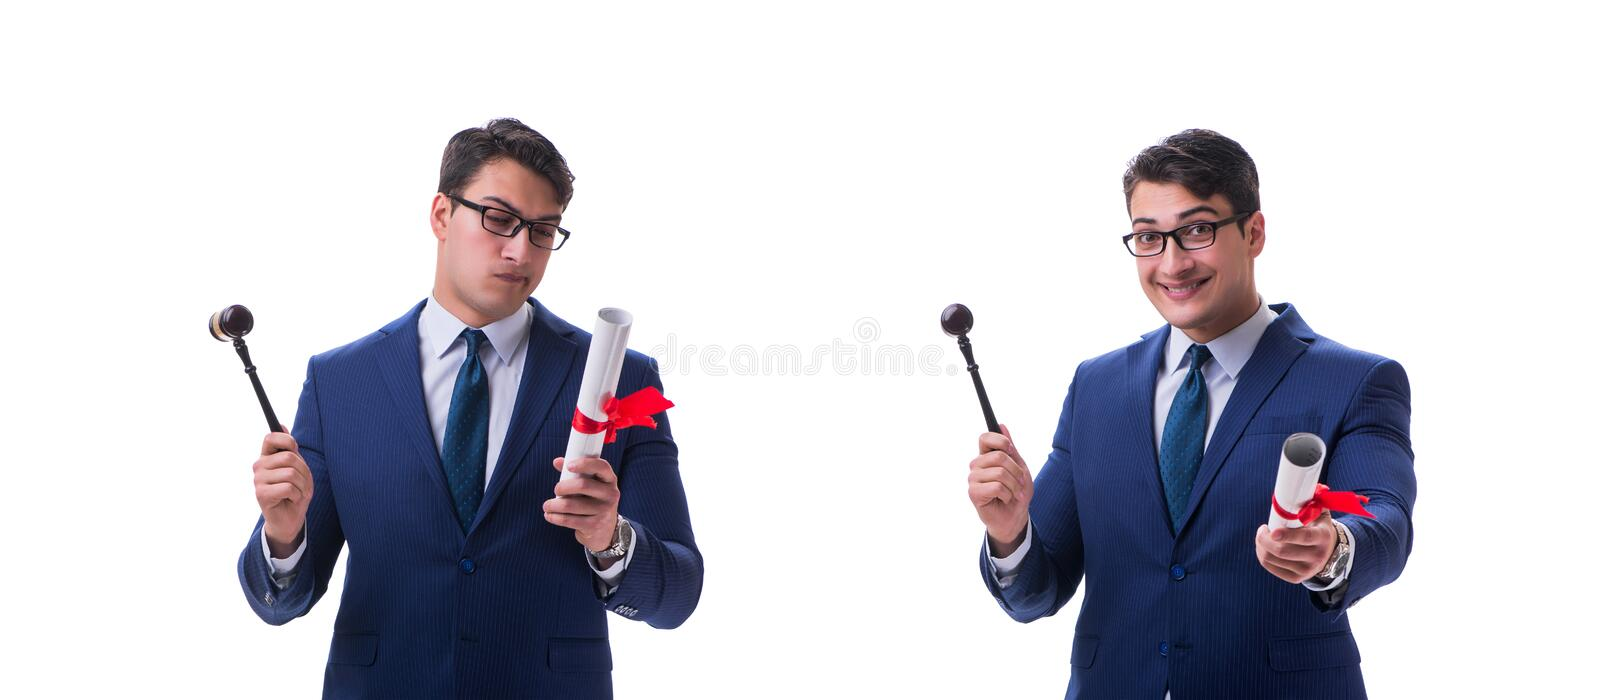 The lawyer law student with a gavel isolated on white background royalty free stock images